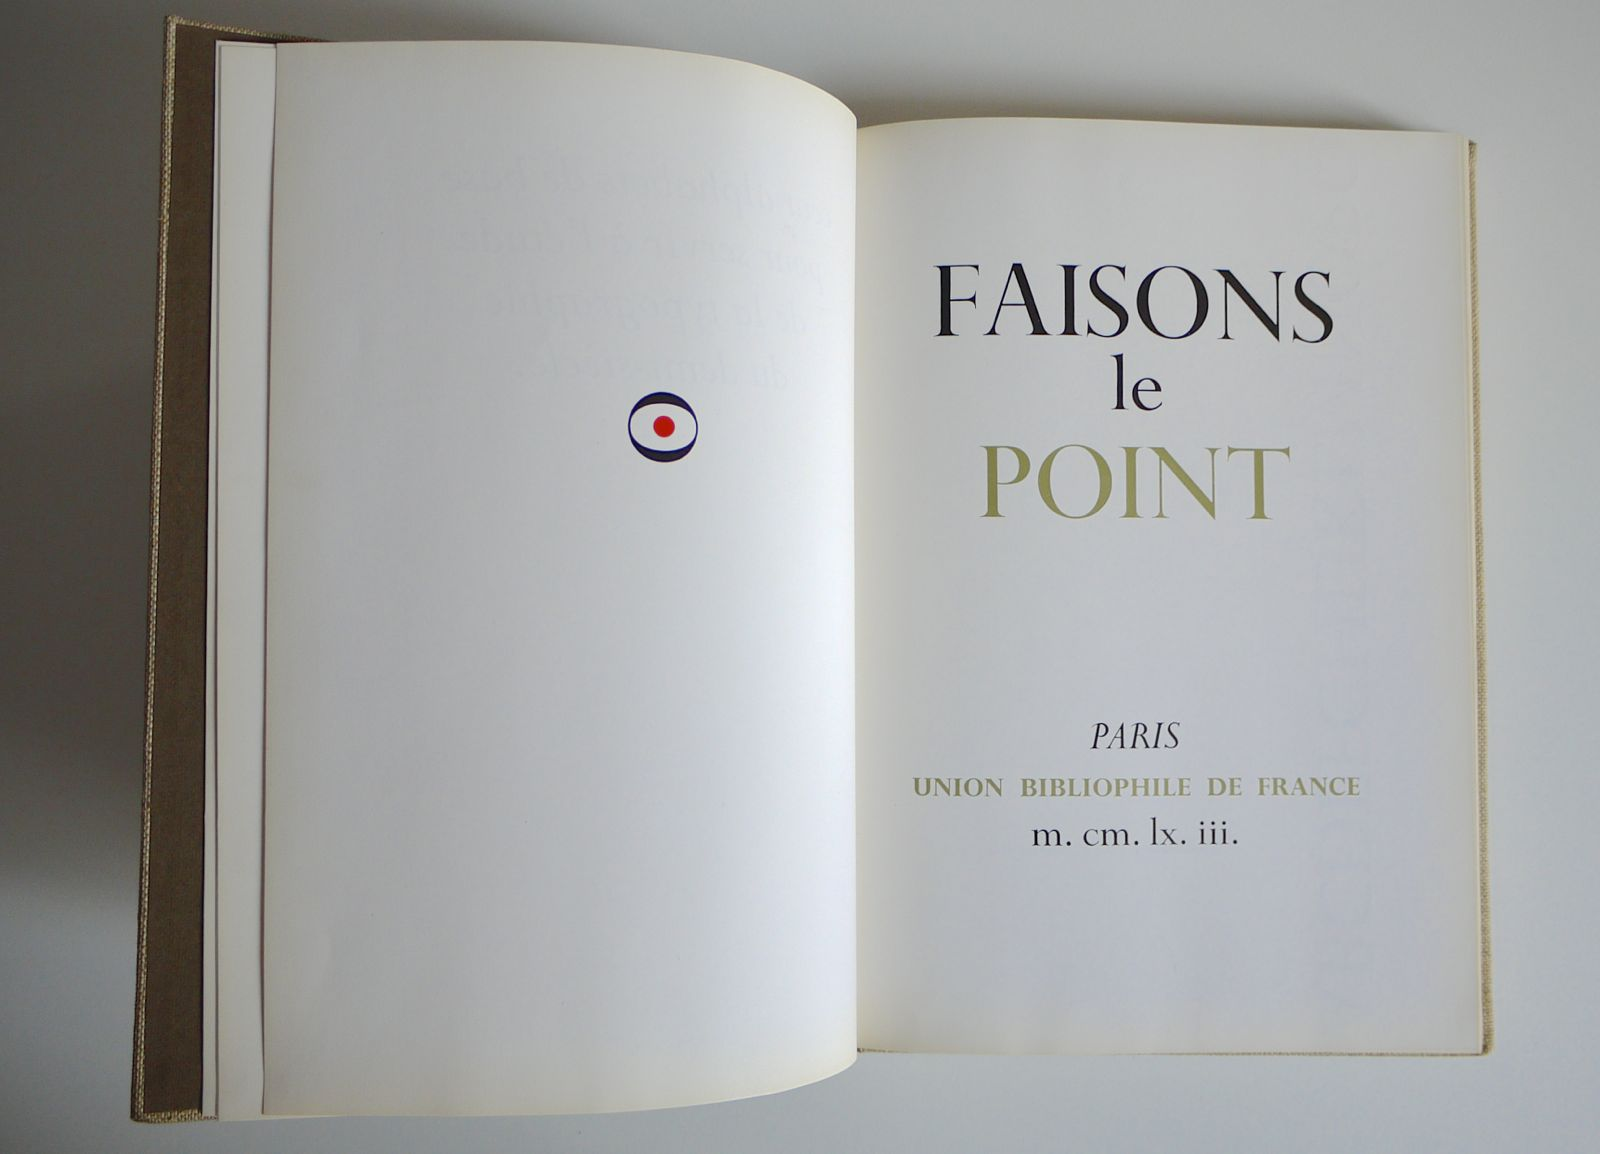 Maximilien Vox Typographer - Faisons le point, Monotype